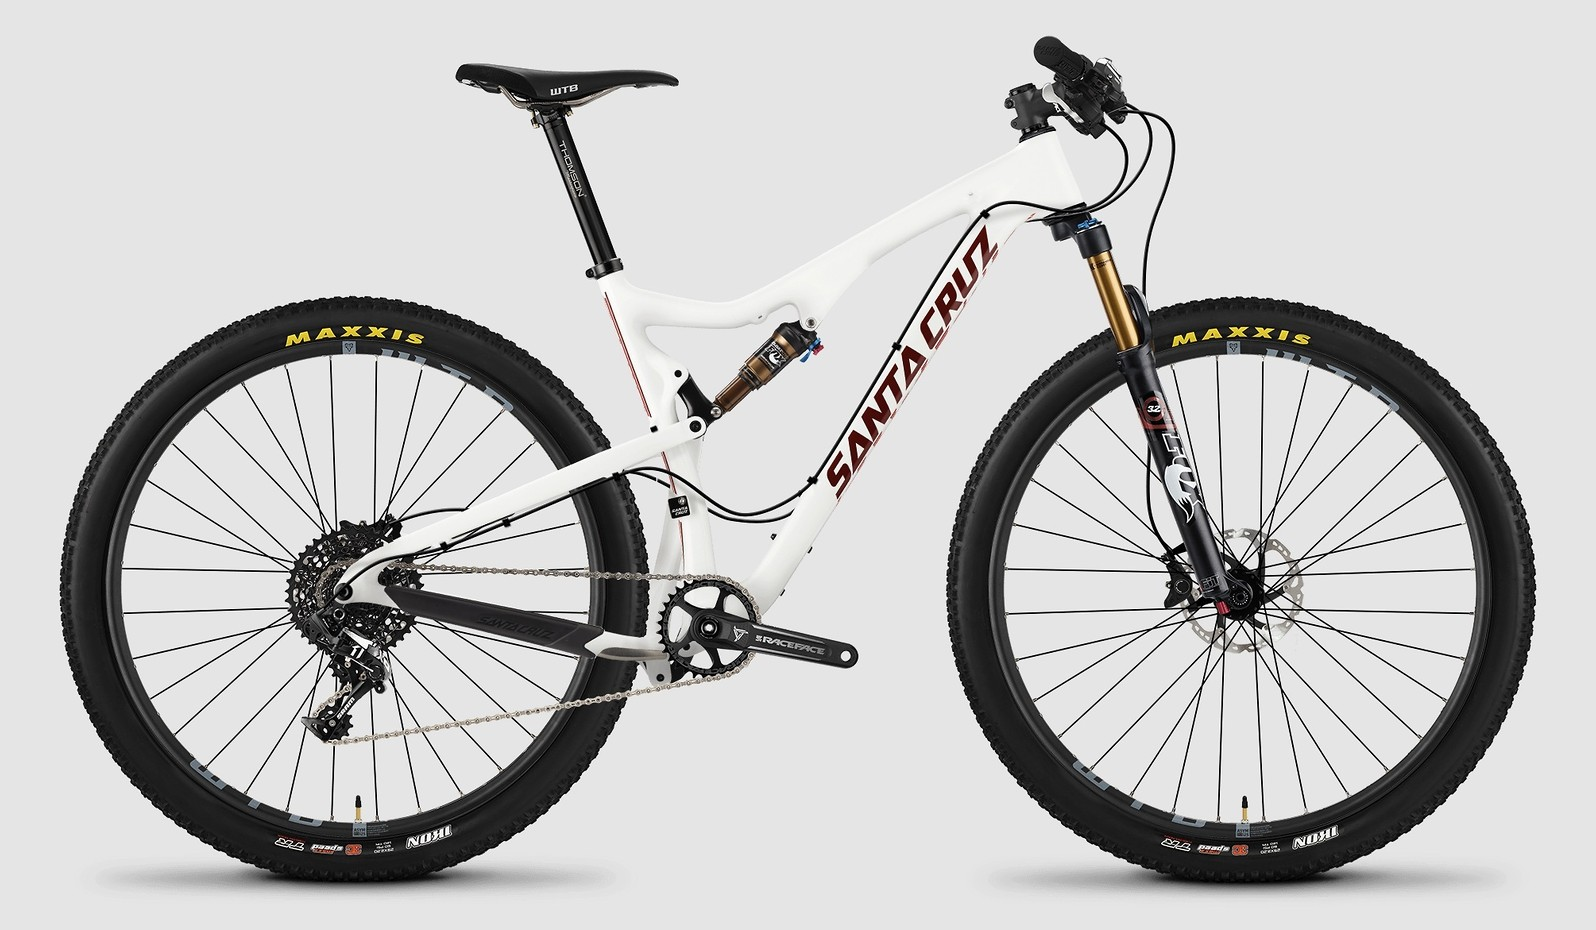 2015 Santa Cruz Tallboy Carbon C X01 bike - white